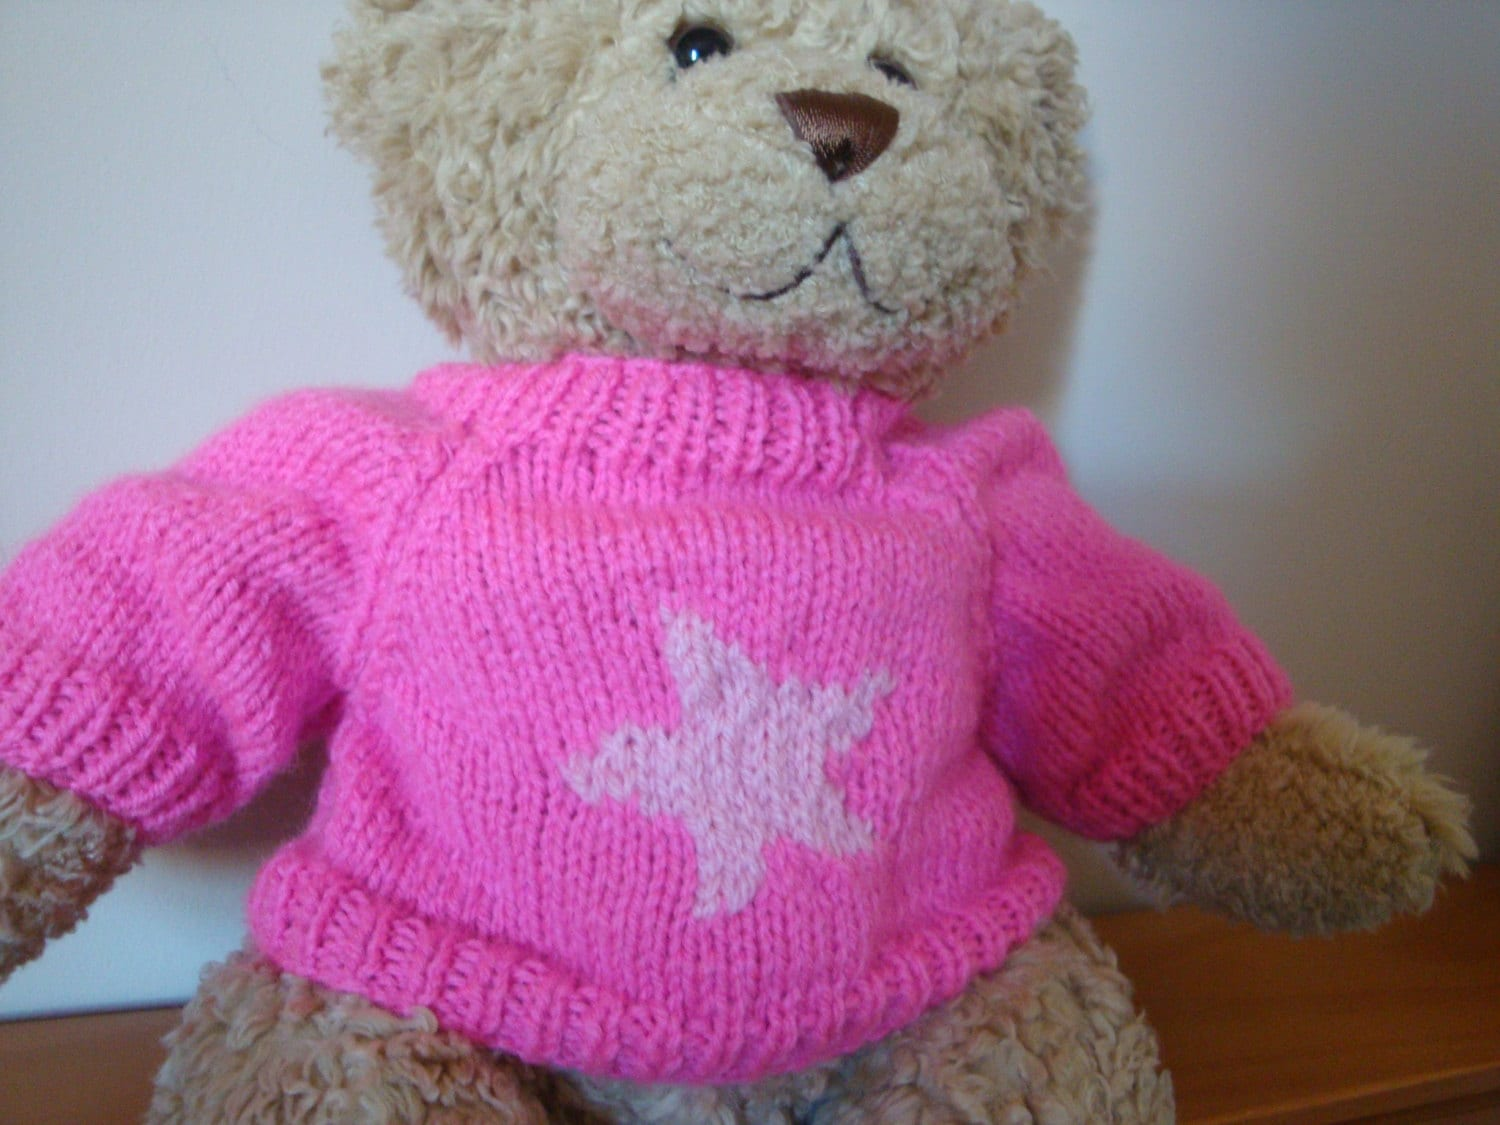 Knitting Pattern For Teddy Bear Sweater : Teddy Bear Sweater Hand knitted Bright Pink Star design